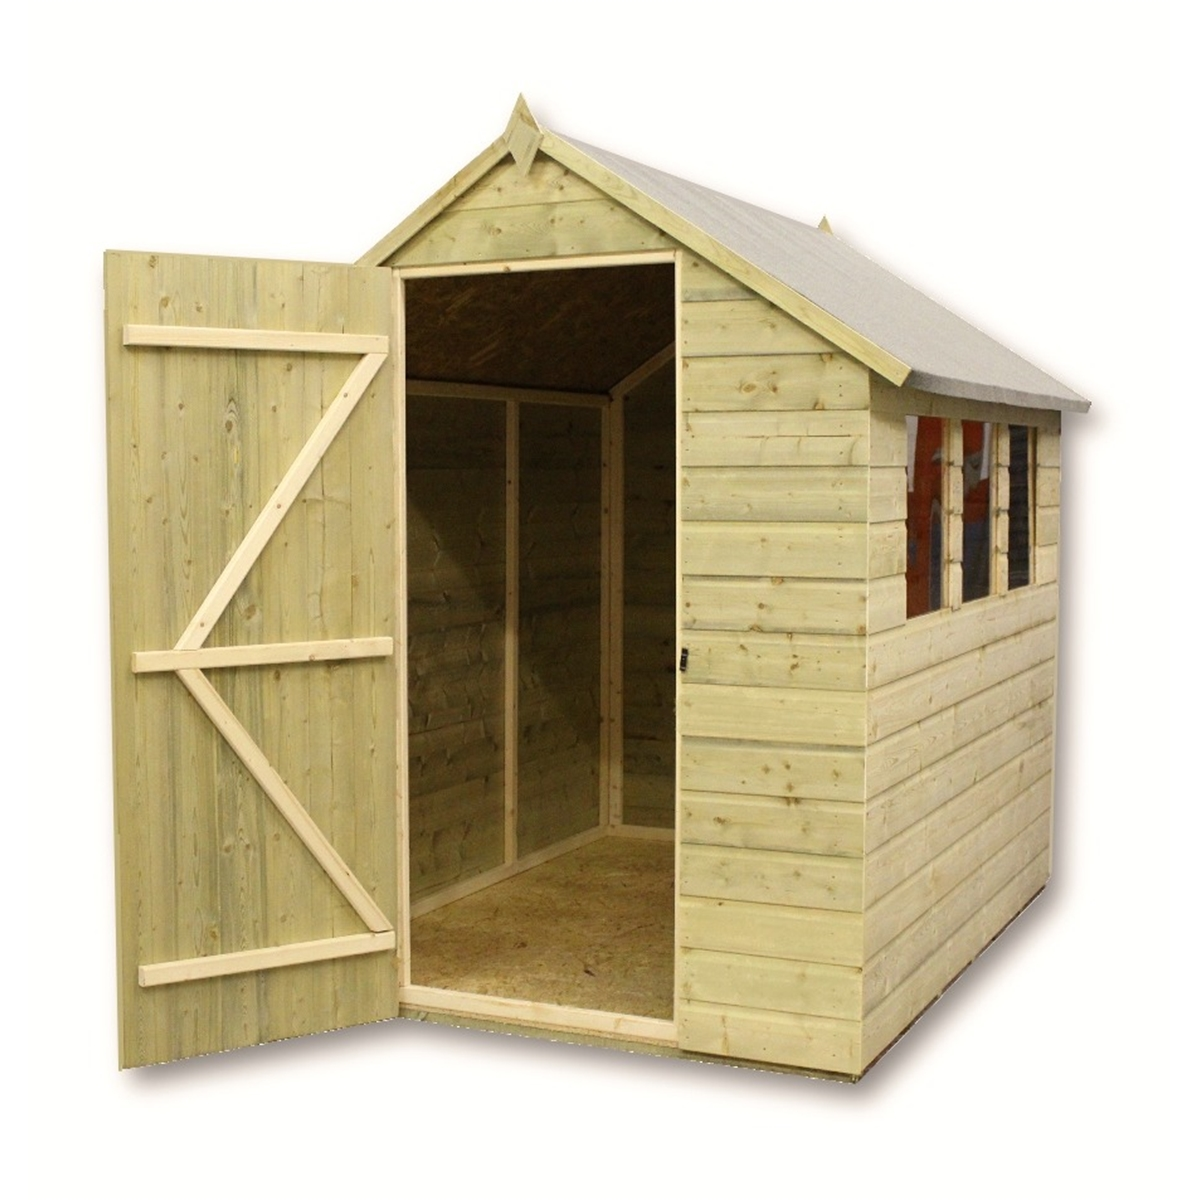 1200 #34250E  Treated Tongue And Groove Apex Shed With 3 Windows And Single Door image Shed Doors And Windows 41331200